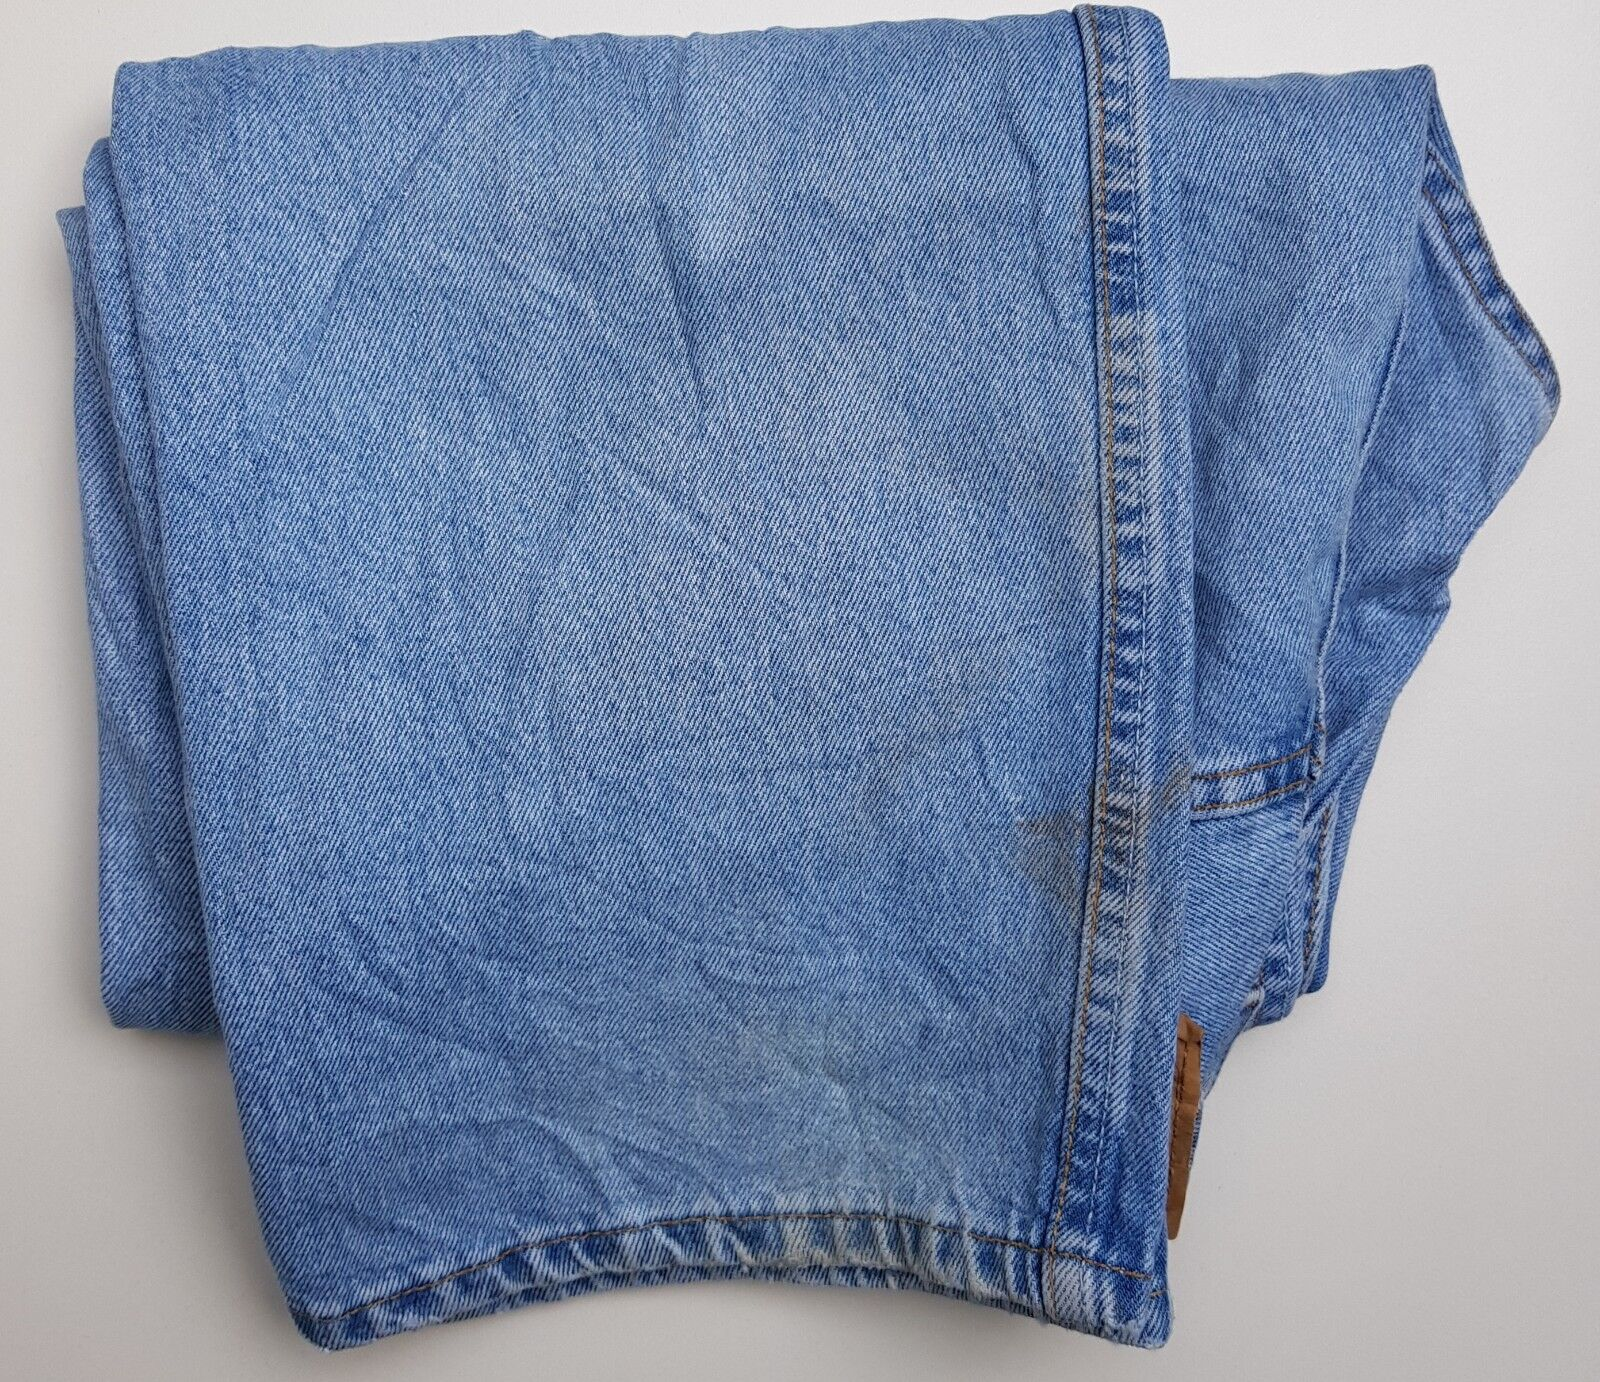 MEN`S LEVI`S GRADE B 501 505 512 517 550 USED DENIM JEANS AUTHENTIC VINTAGE